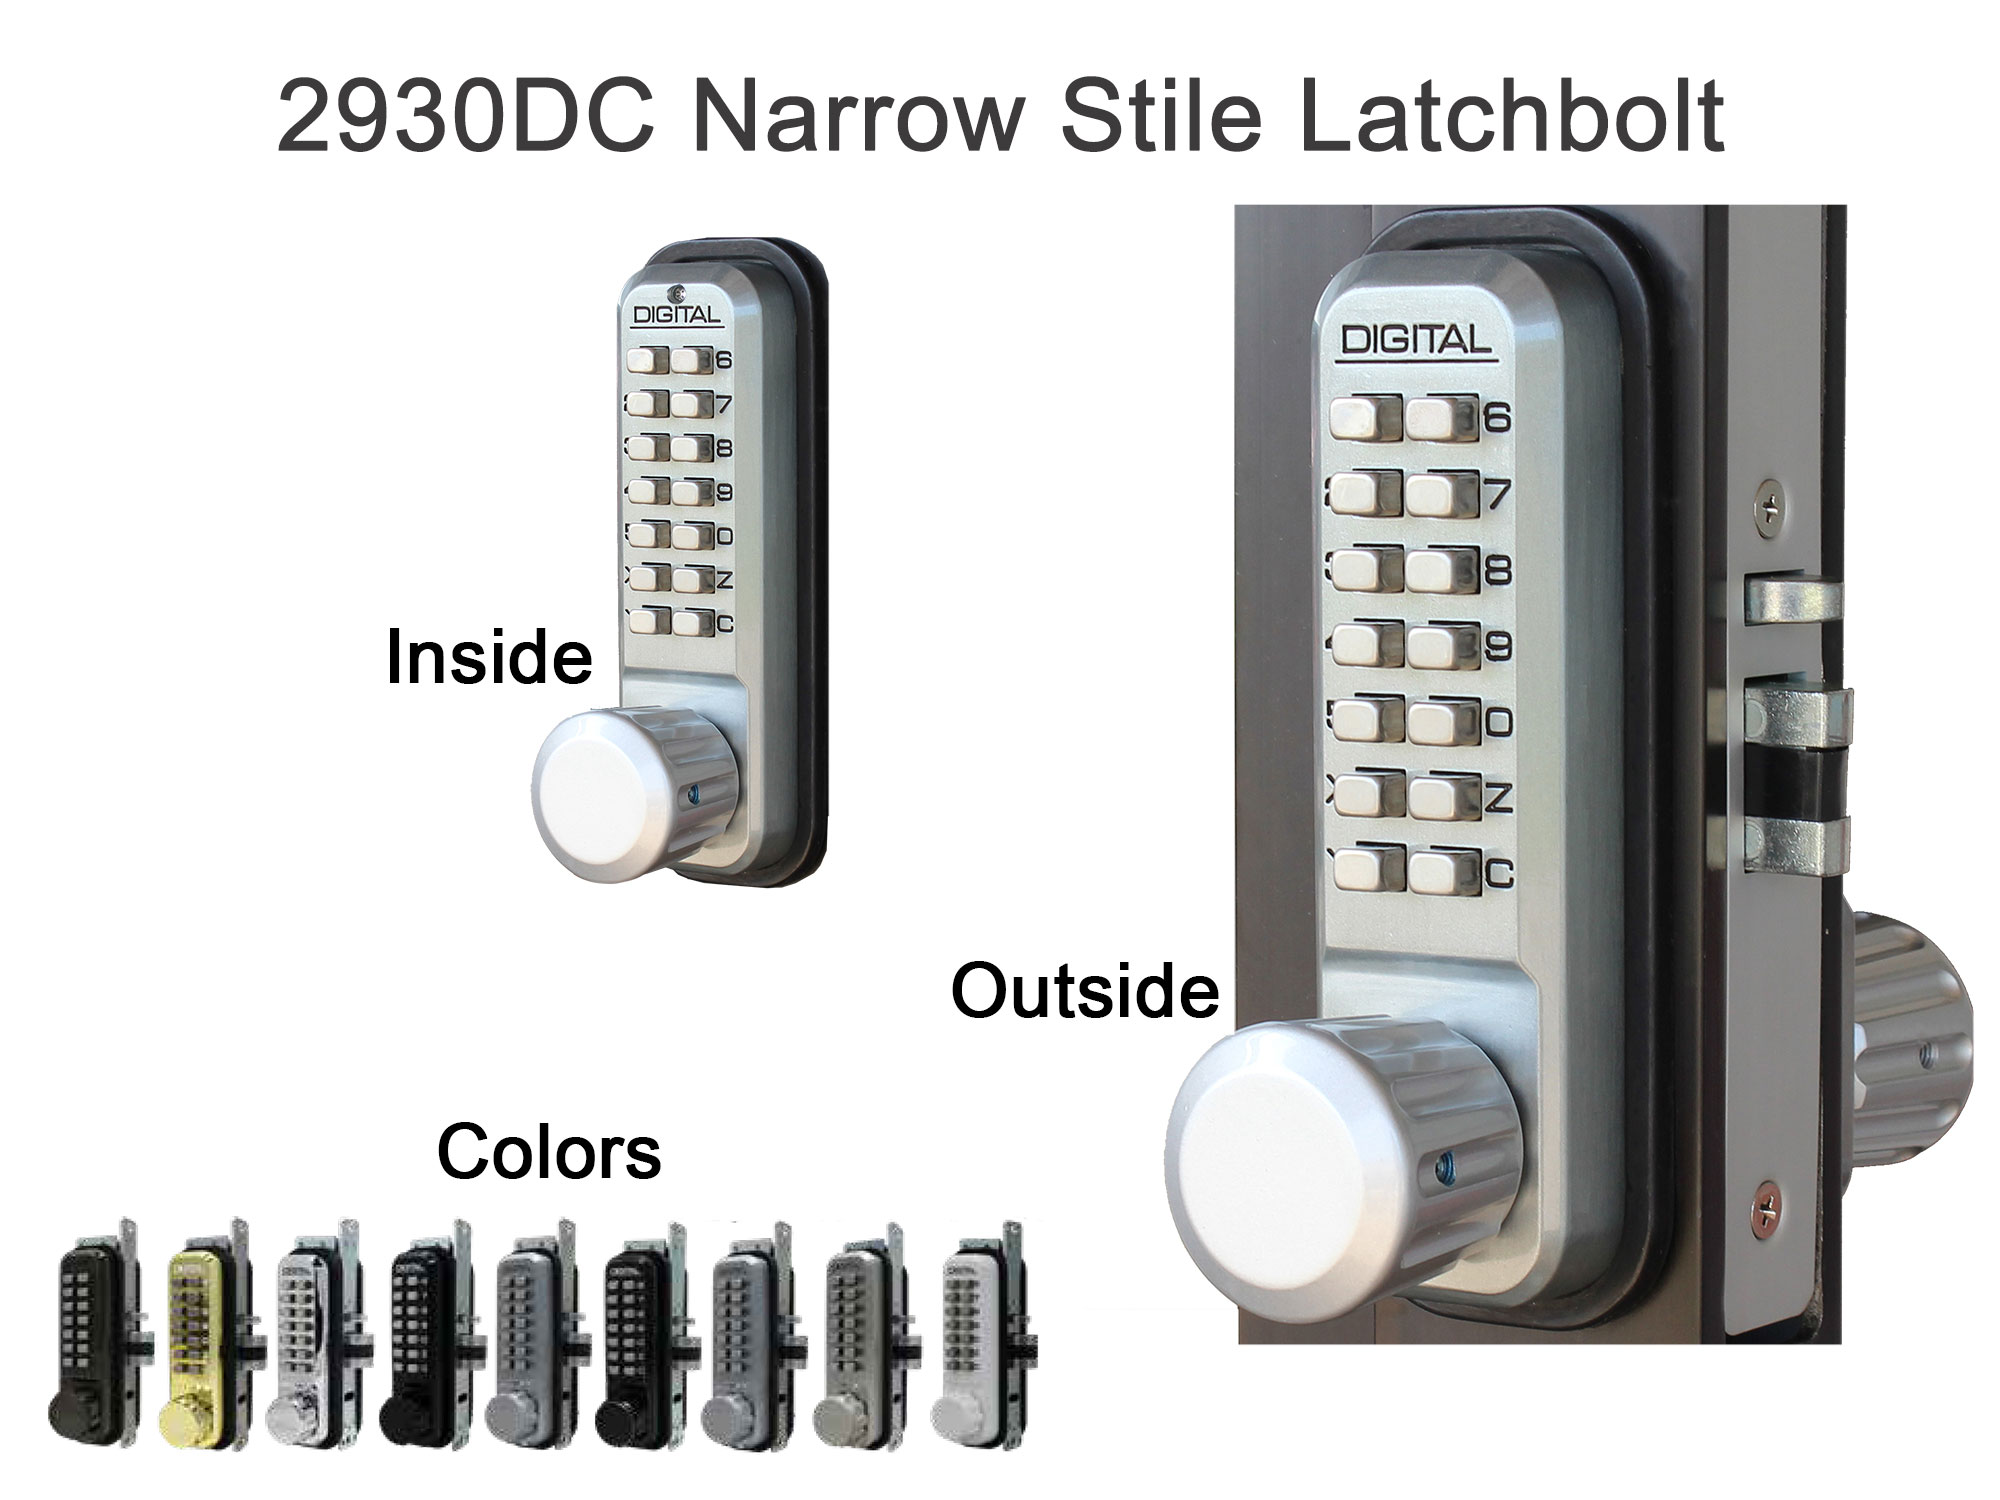 Lockey 2930DC Narrow-Stile Latchbolt Knob-Handle Double-Keypad Lock